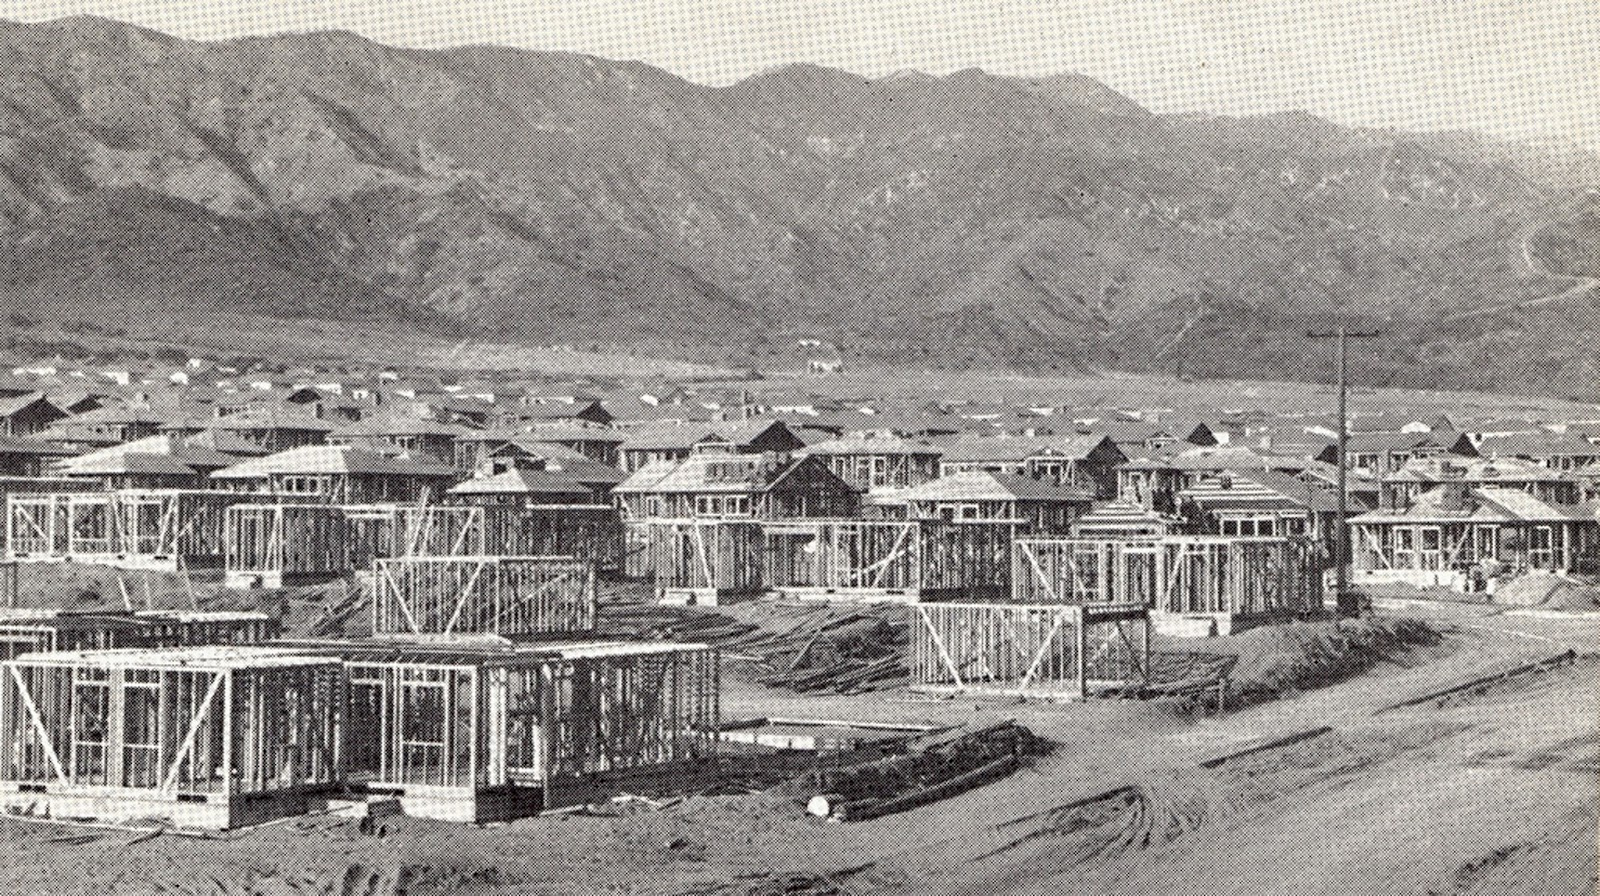 San Fernando Valley housing tract c. 1949